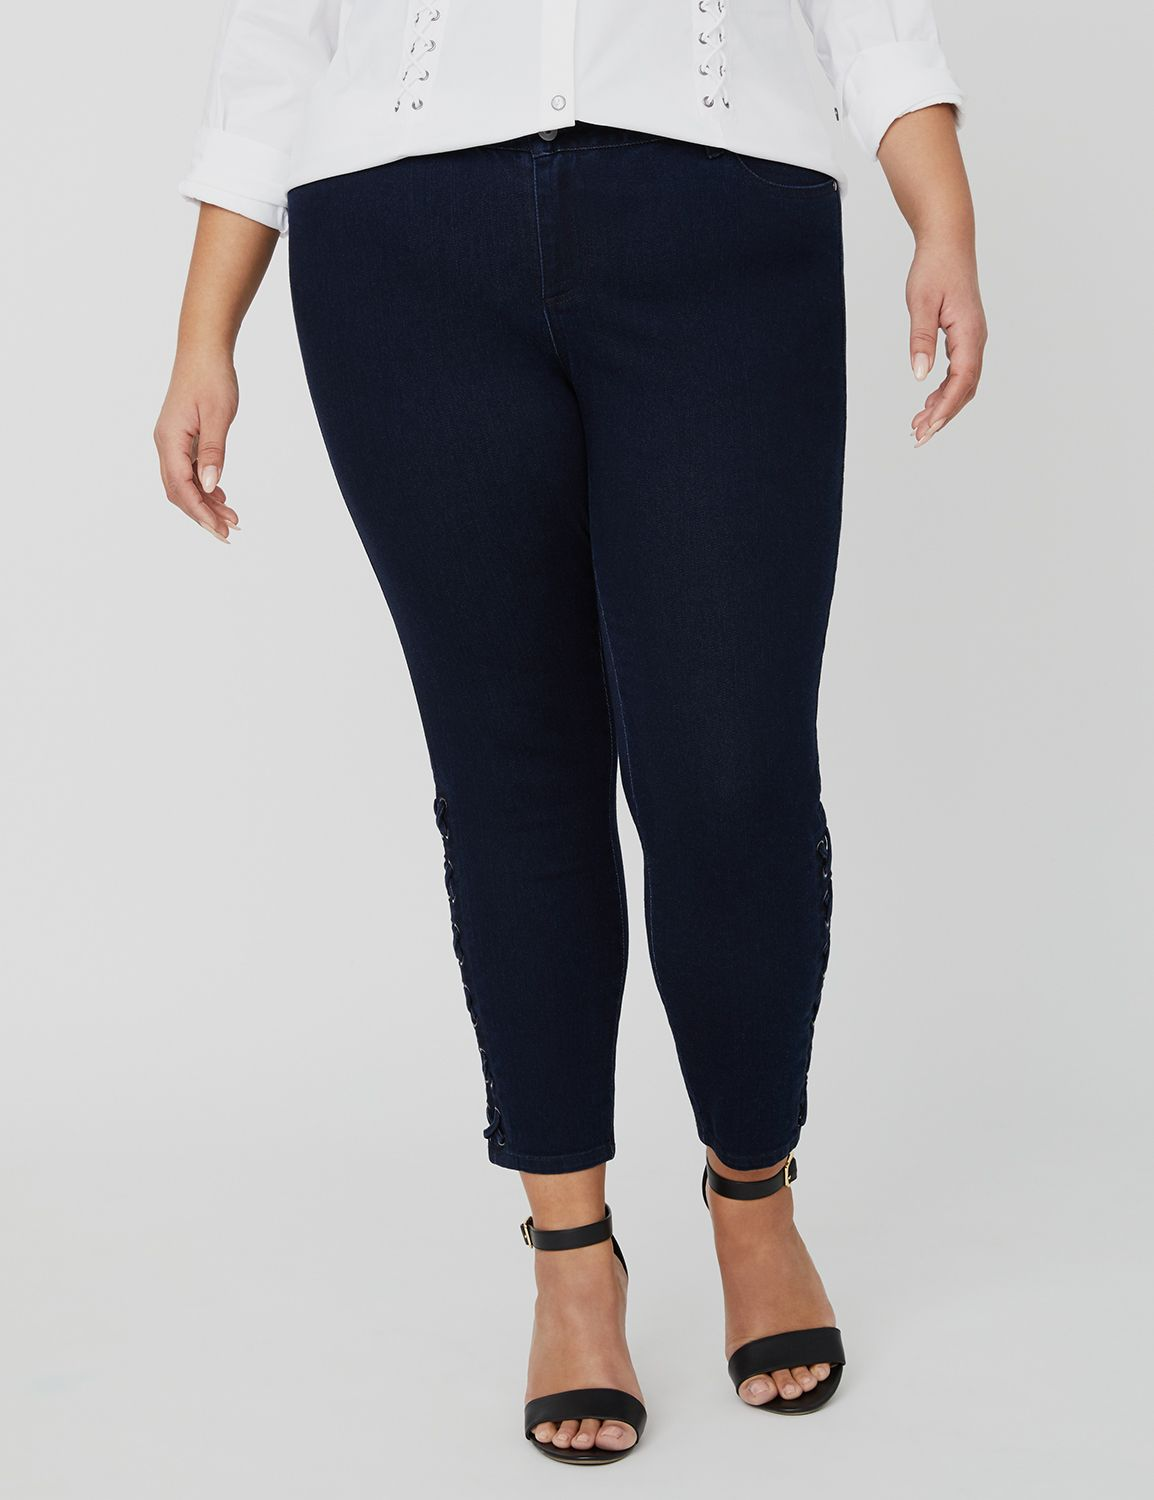 Curvy Collection Lace-Up Jean 1088607 Curvy Collection Sateen (11 MP-300099459